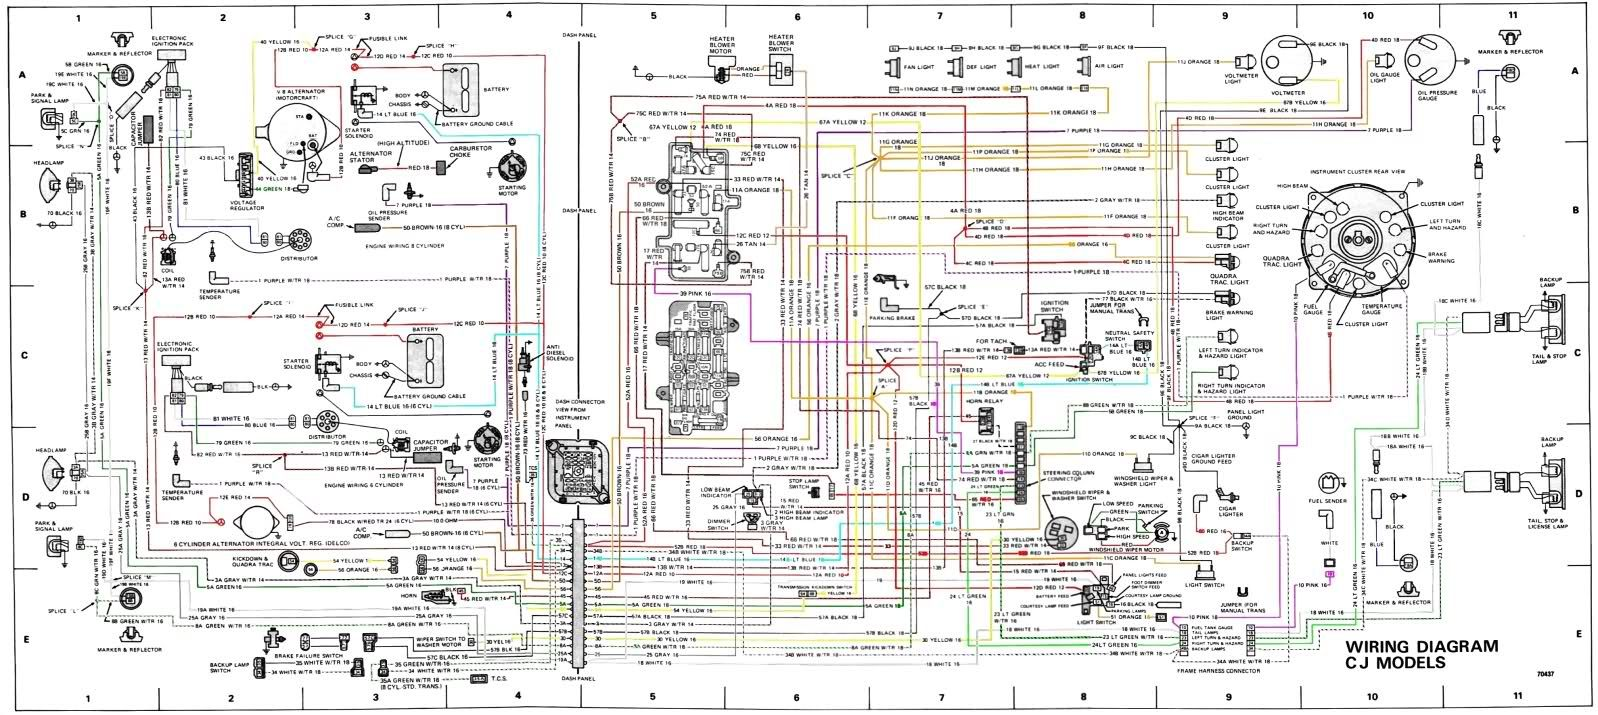 hight resolution of image result for jeep cj7 wiring harness diagram jeep wire diagram 83 jeep cj7 wiring